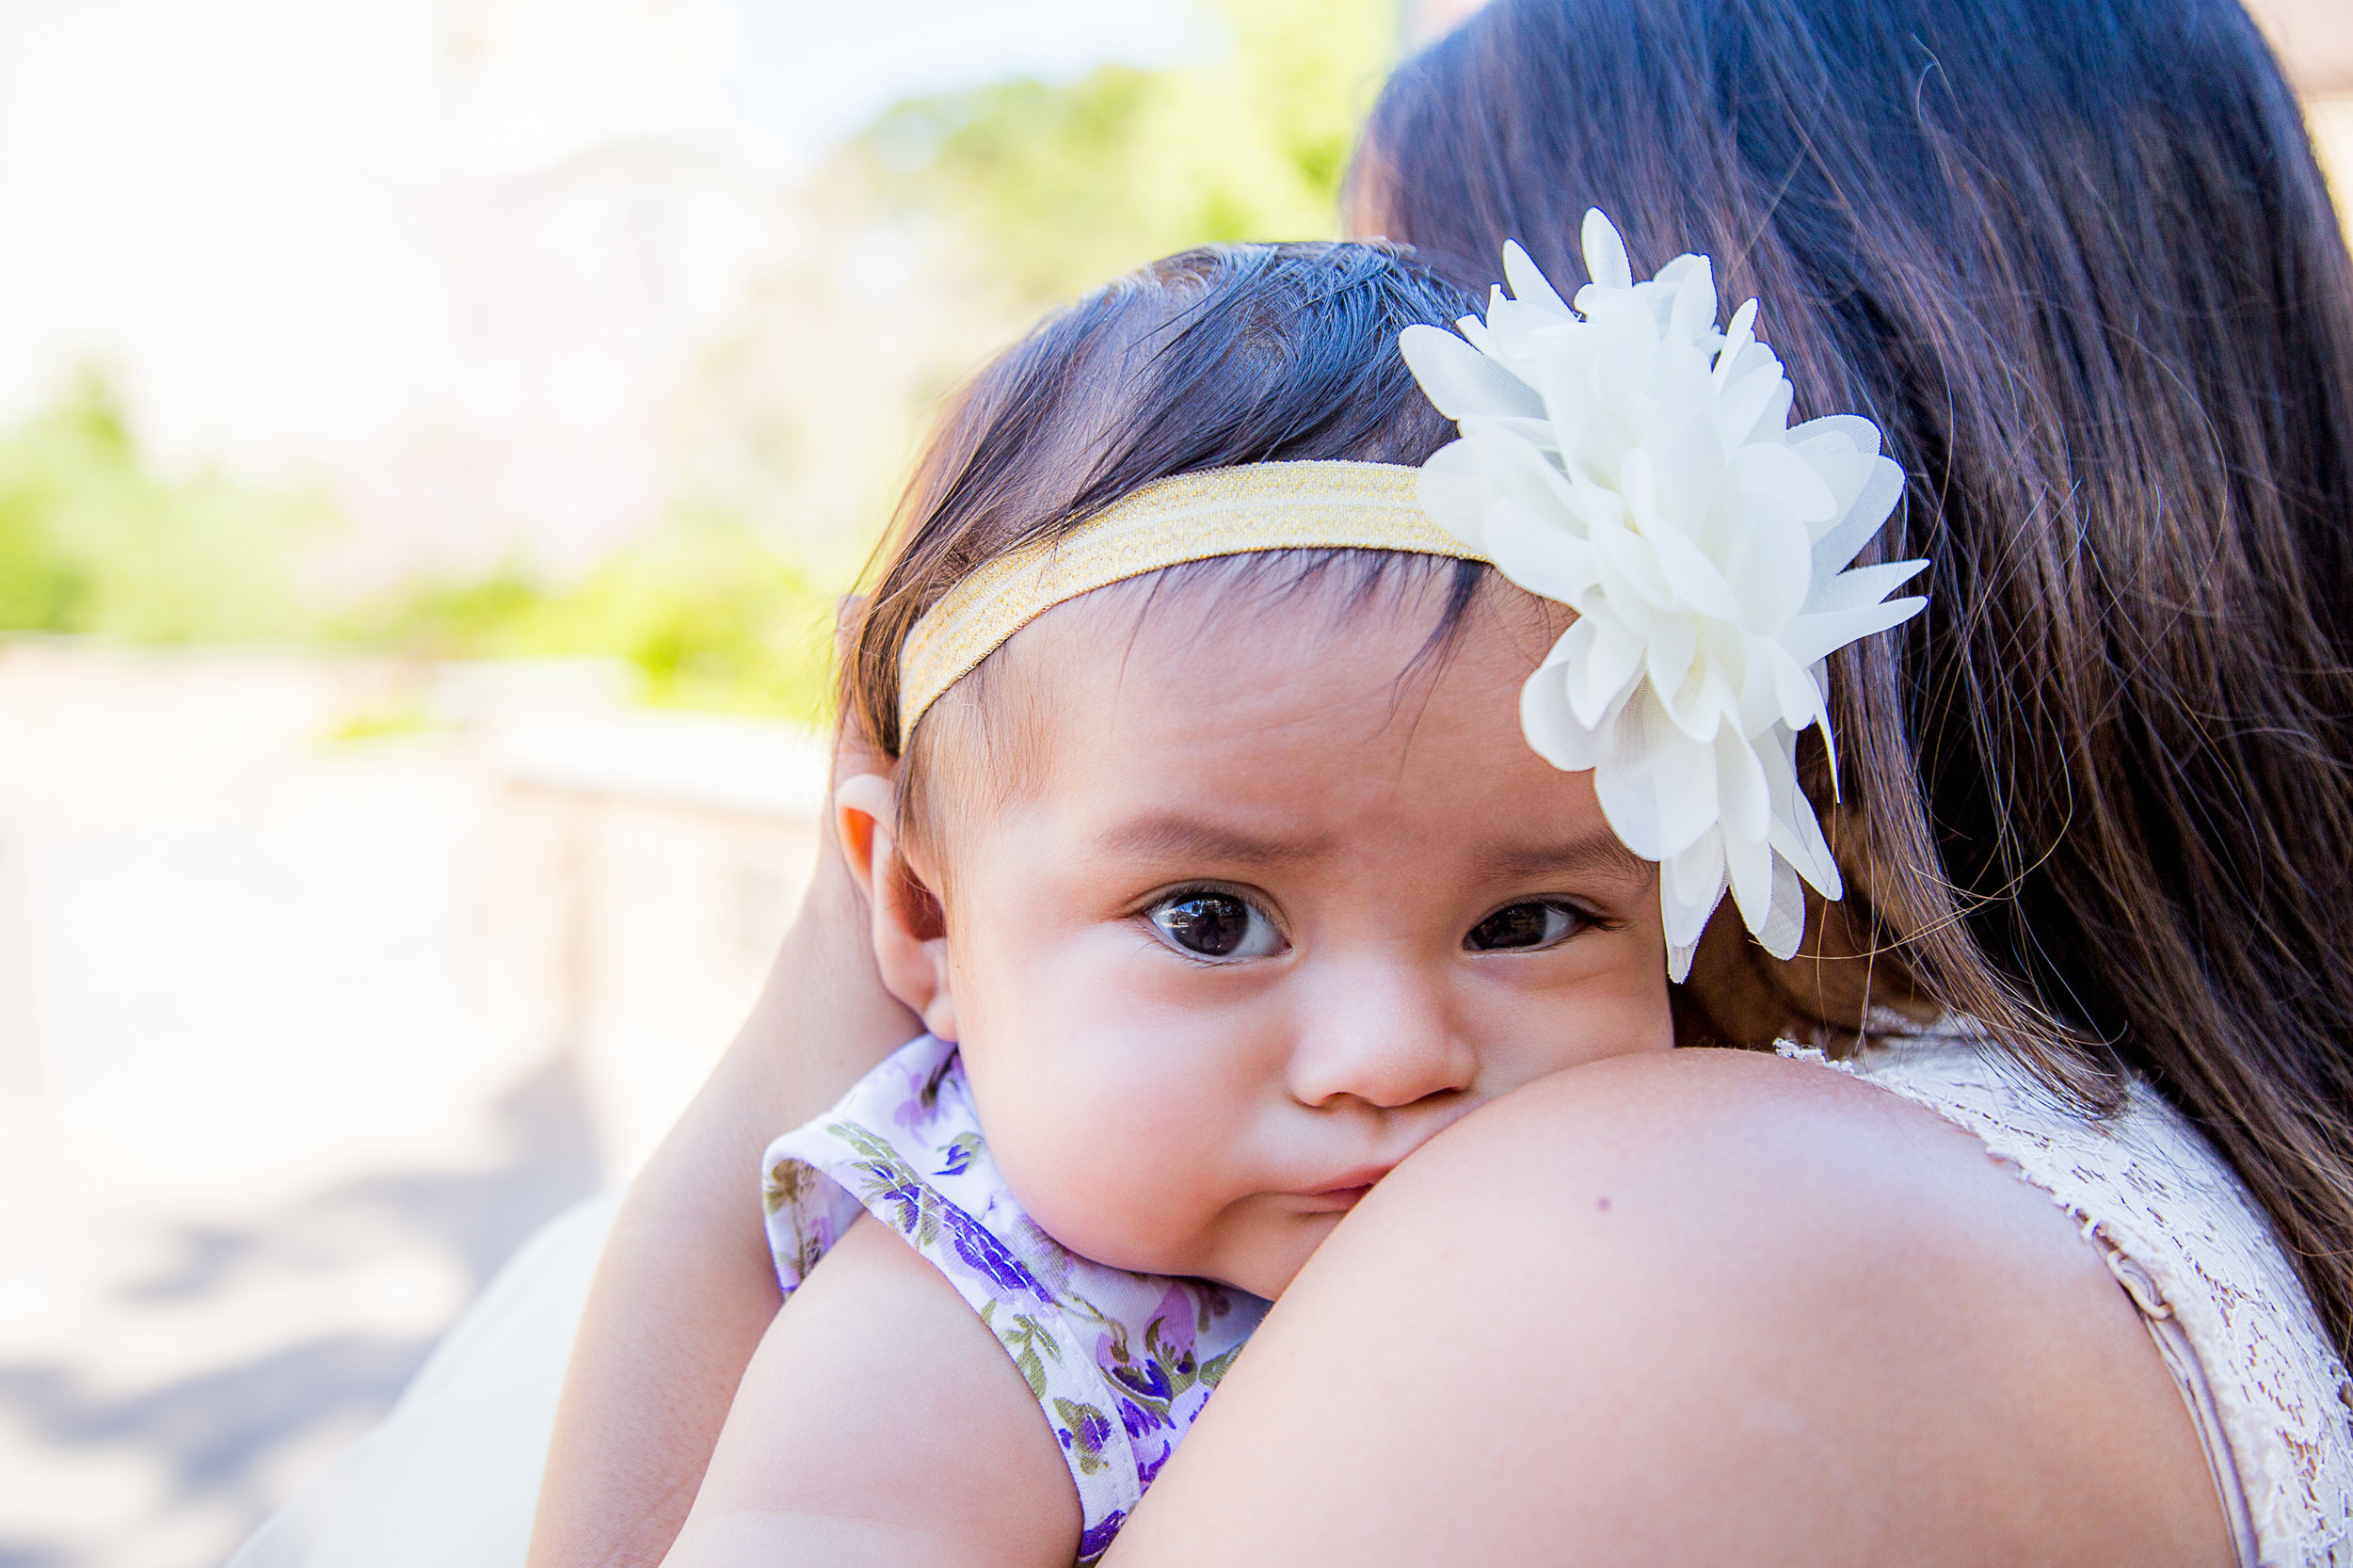 mommy-and-me-balboa-park-wild-flowers-spring (20 of 136).jpg